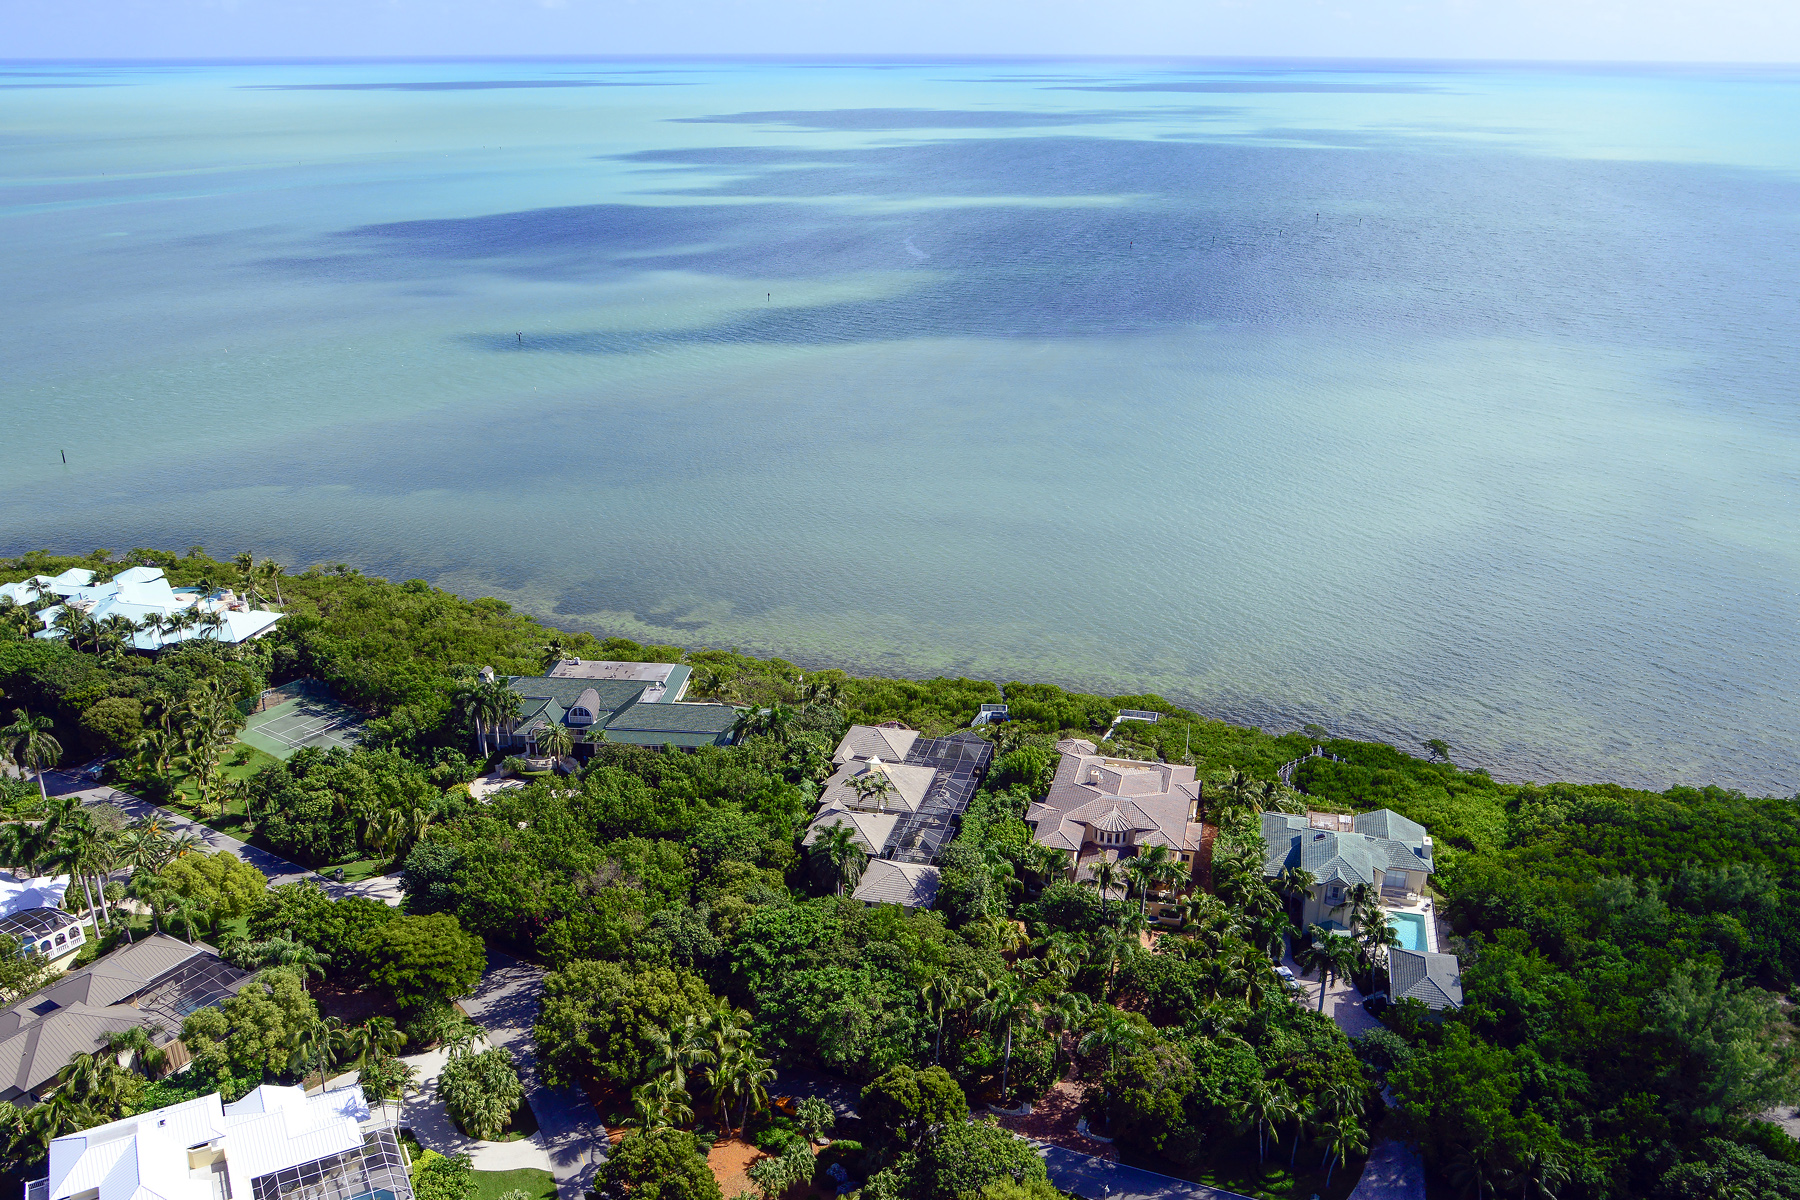 Maison unifamiliale pour l Vente à Ocean Front Home at Ocean Reef 6 Sunrise Cay Drive Ocean Reef Community, Key Largo, Florida, 33037 États-Unis